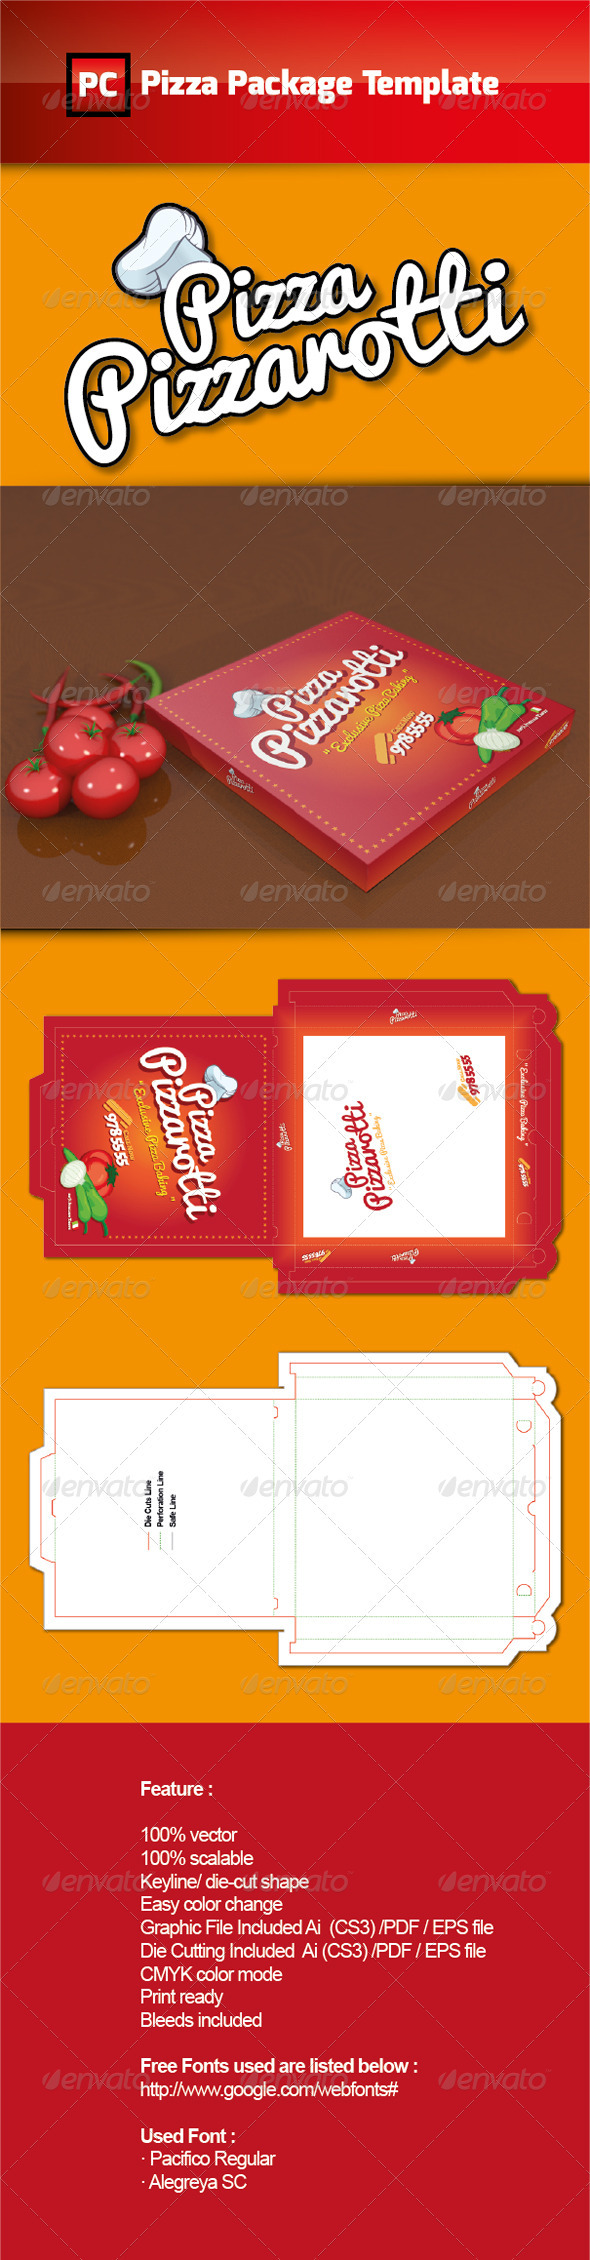 Pizza Package Template Vector Graphicriver